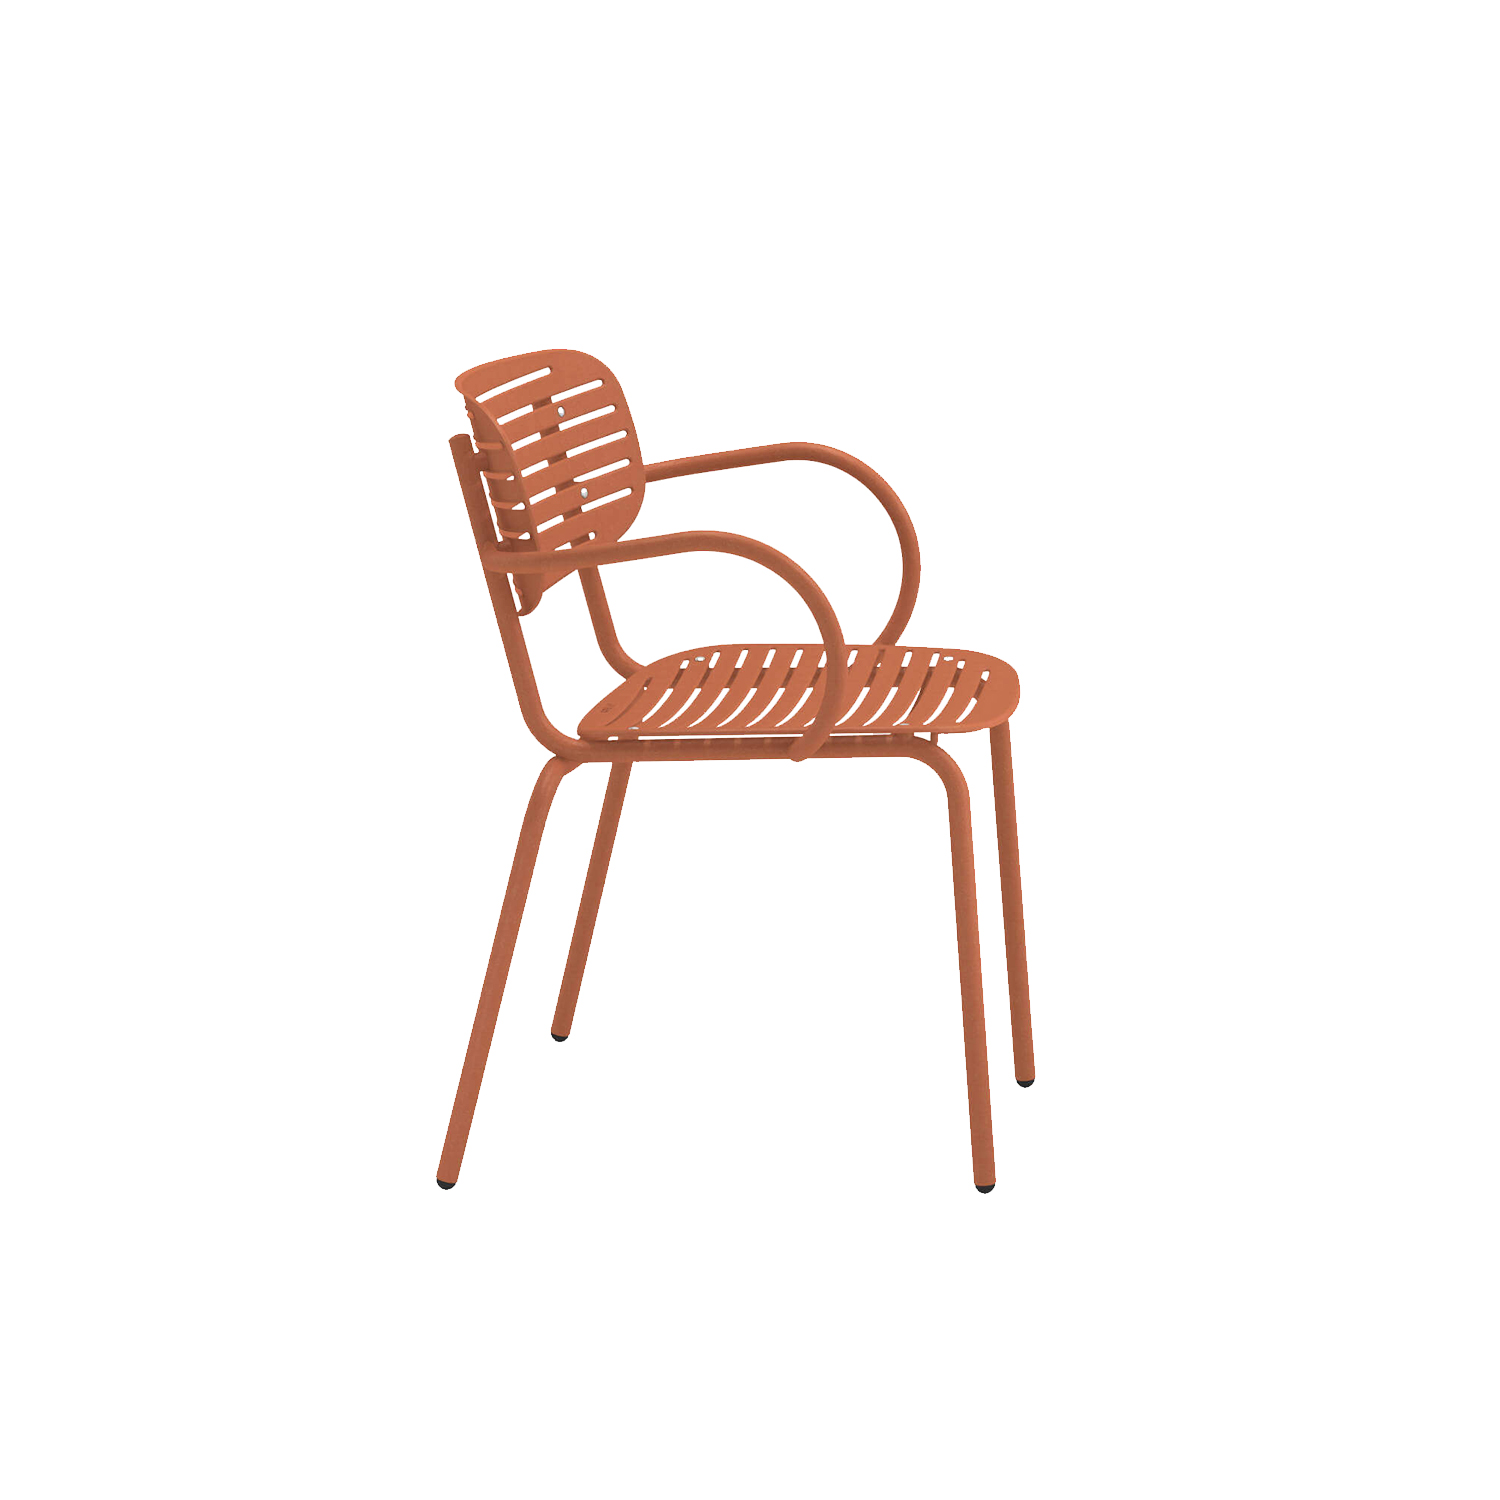 Mom Armchair - Set of 4 - <p>Mom is a brightly coloured collection of steel chairs in two versions, a chair and an armchair. The graphic effect of the elegant, sculptural, metal backrest lightens the soft, snug shapes. The solid colour palette gives this collection a young, fresh and ironic touch.</p>  | Matter of Stuff